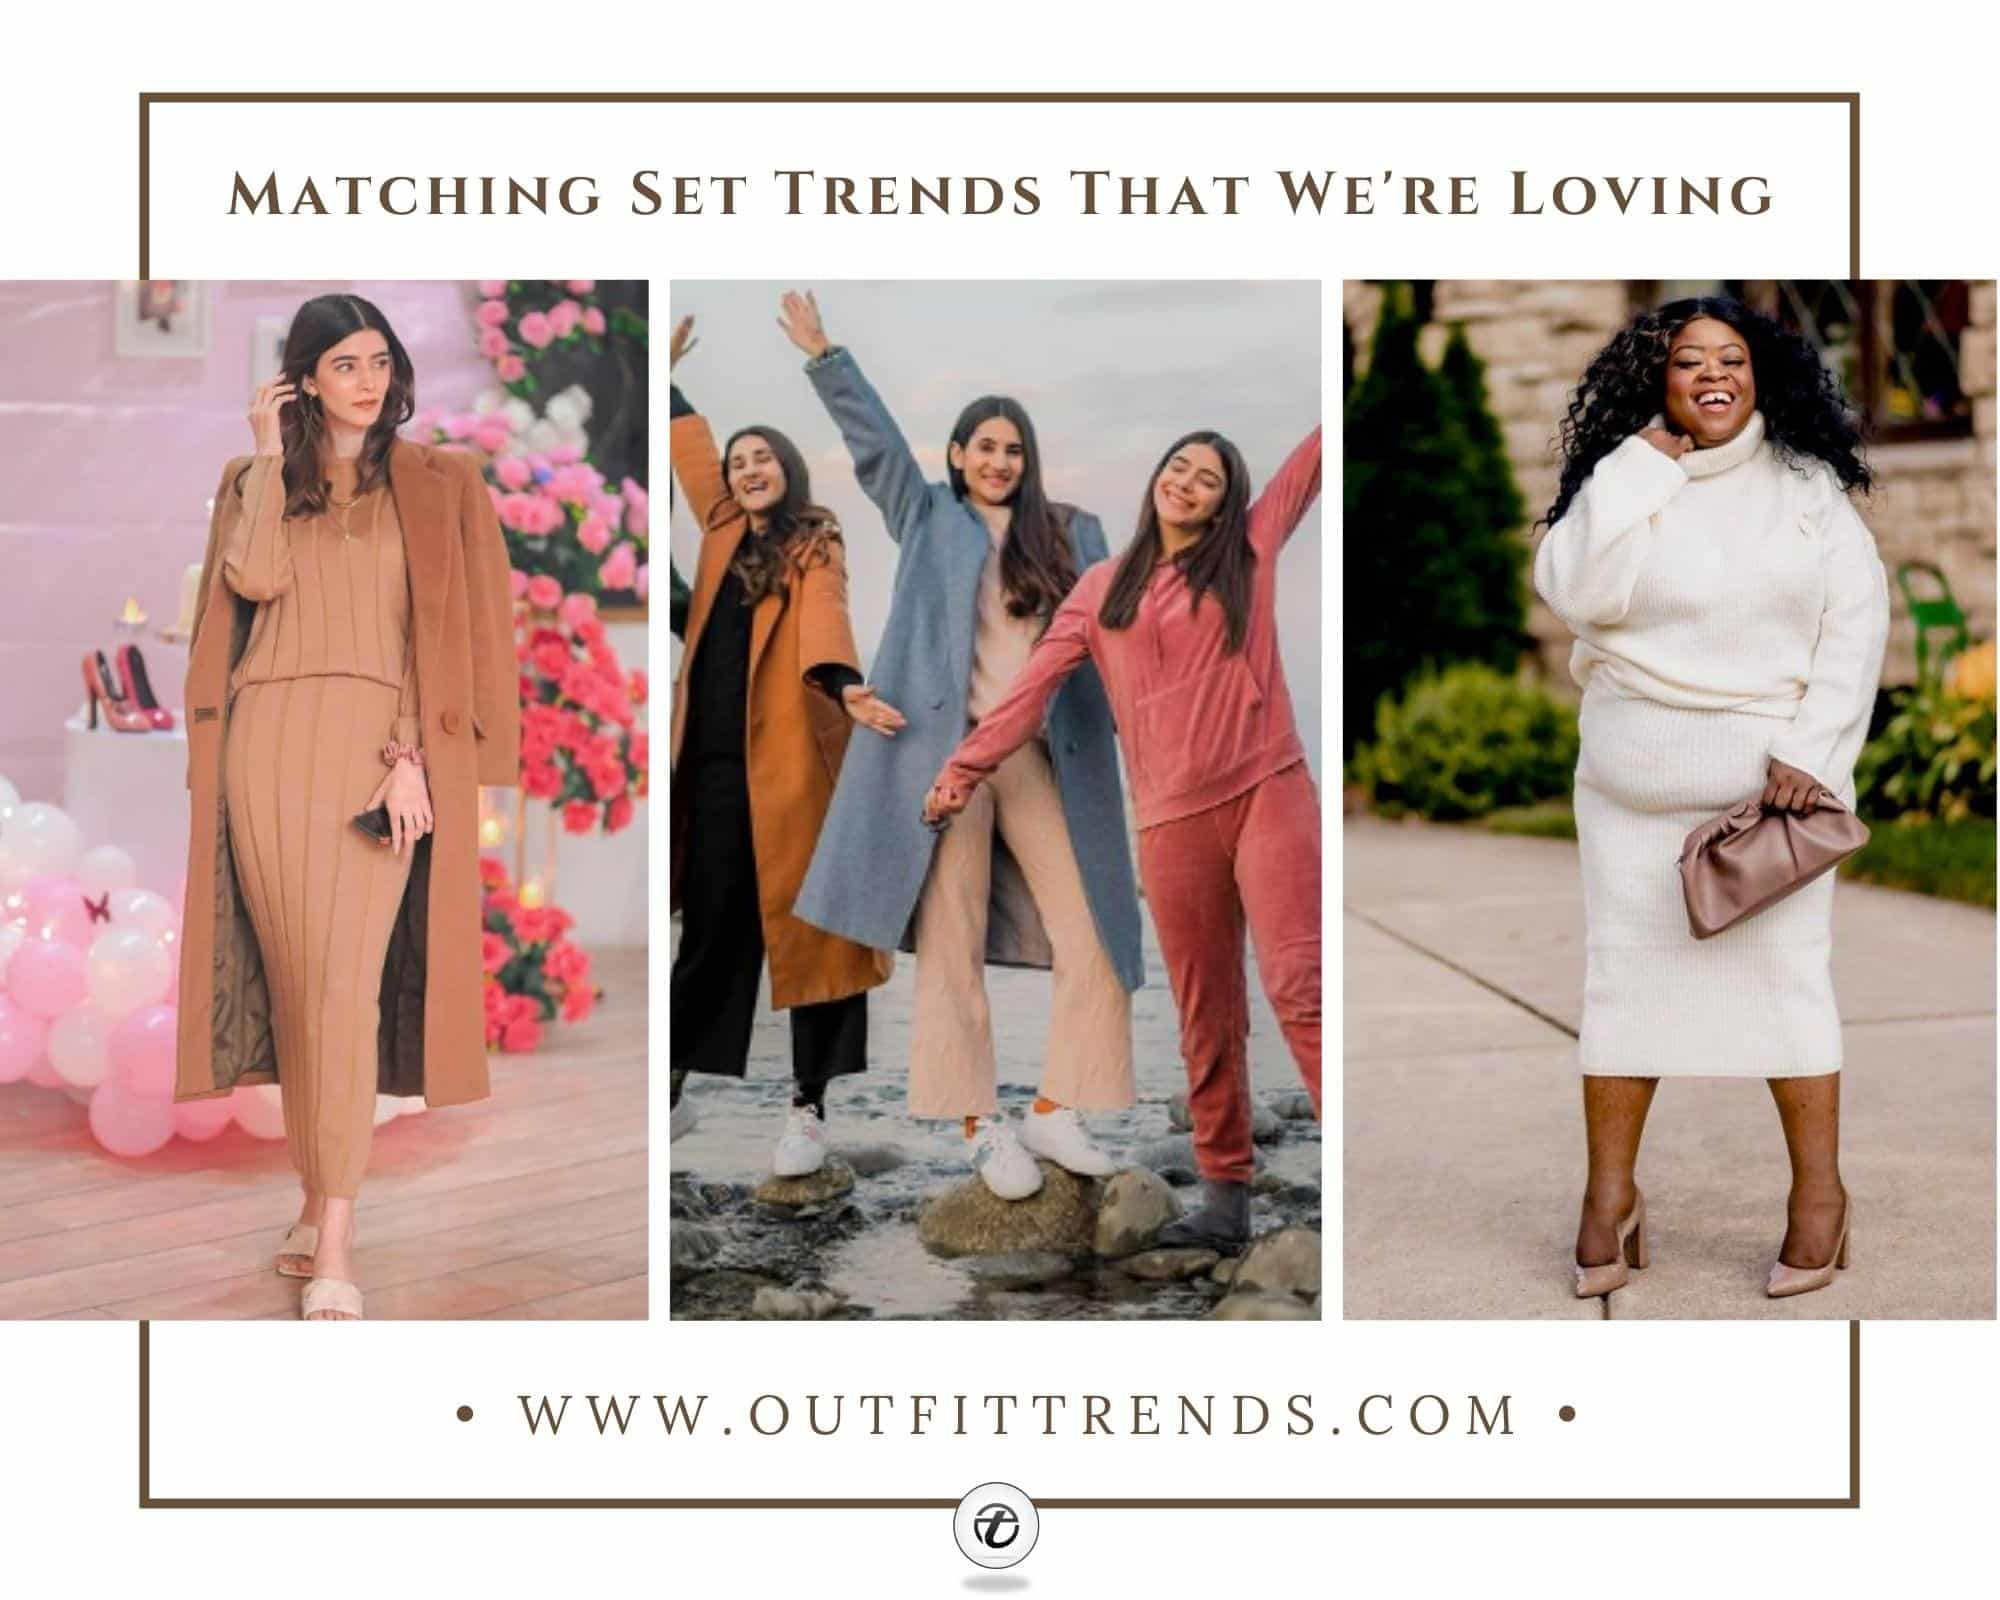 21 Best Matching Sets to Wear in 2021 How to Style Them